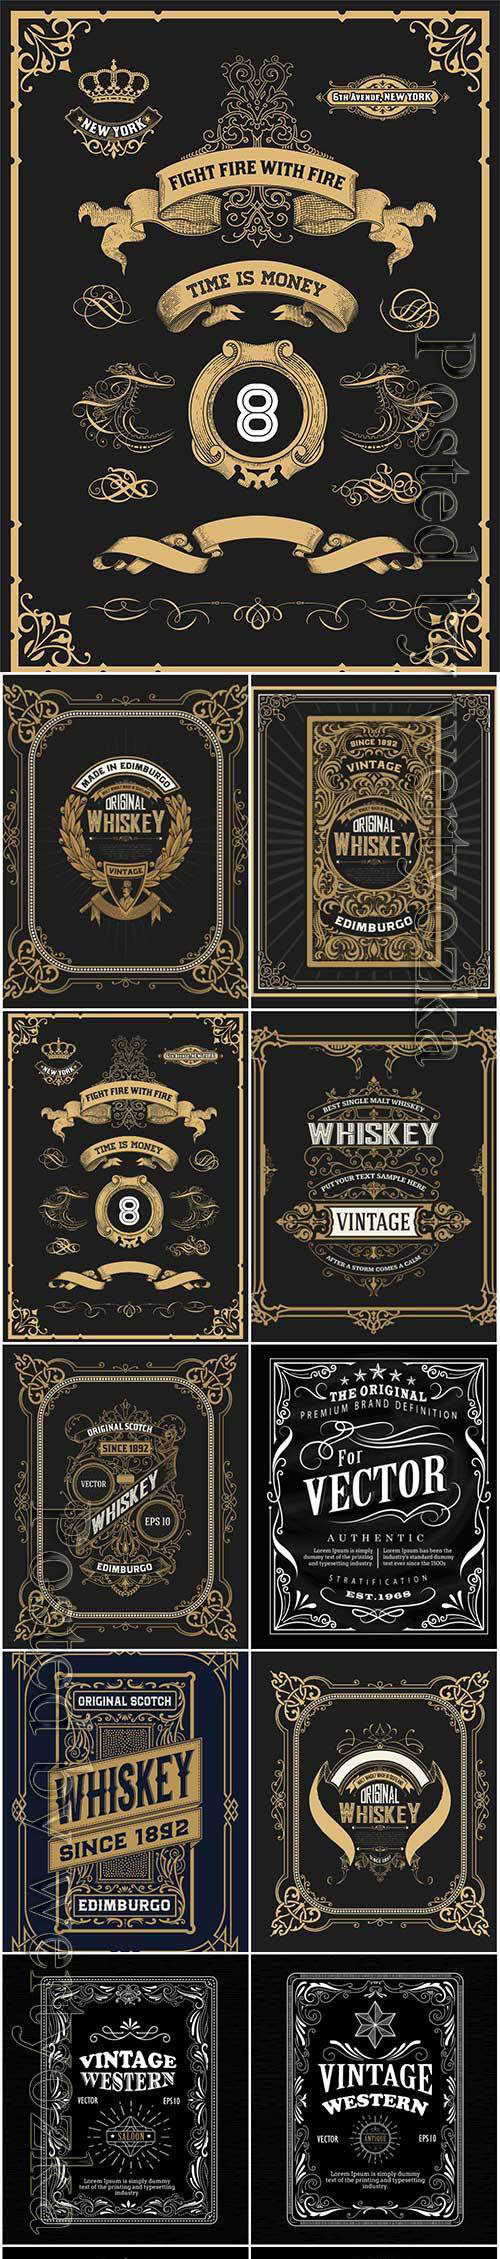 Vector vintage labels, emblems, logos, ribbons, patterns # 14